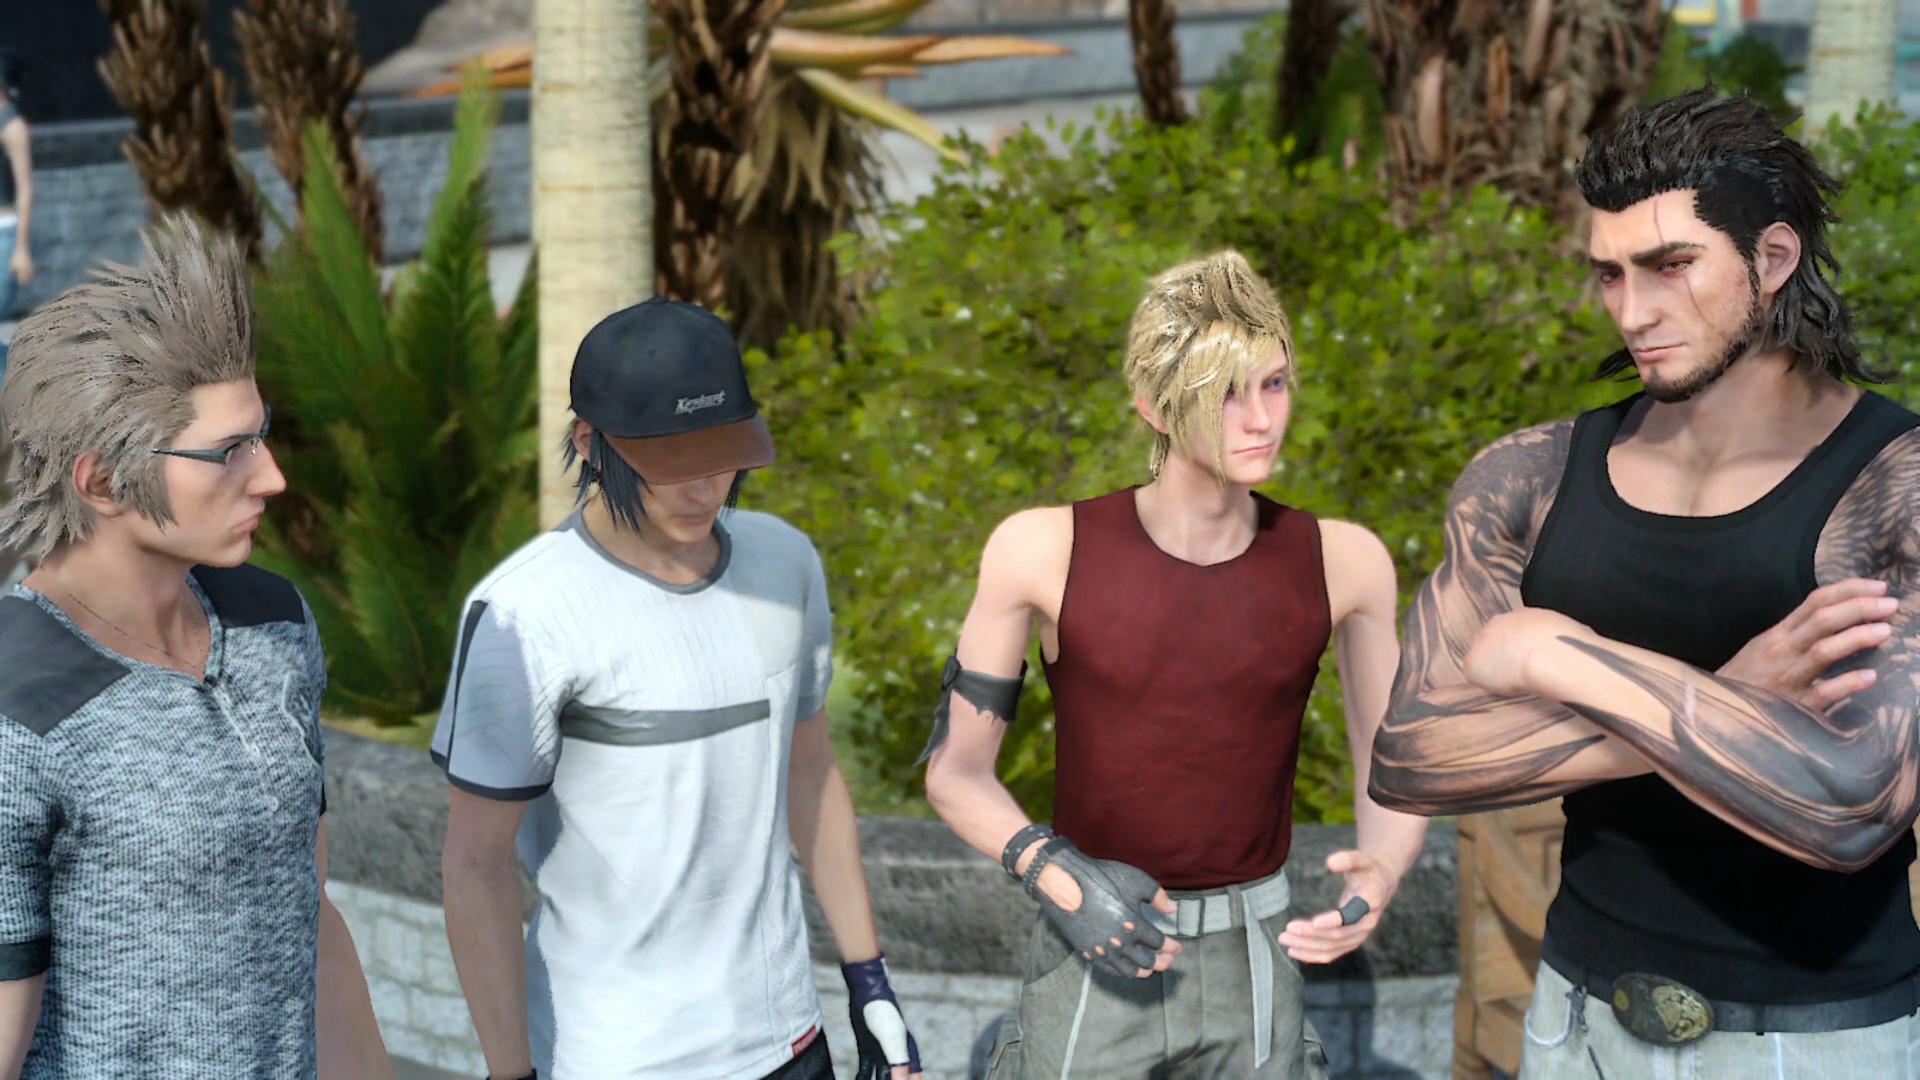 All the costumes/outfits for Prompto, Ignis and Gladio in FF15  where to find them